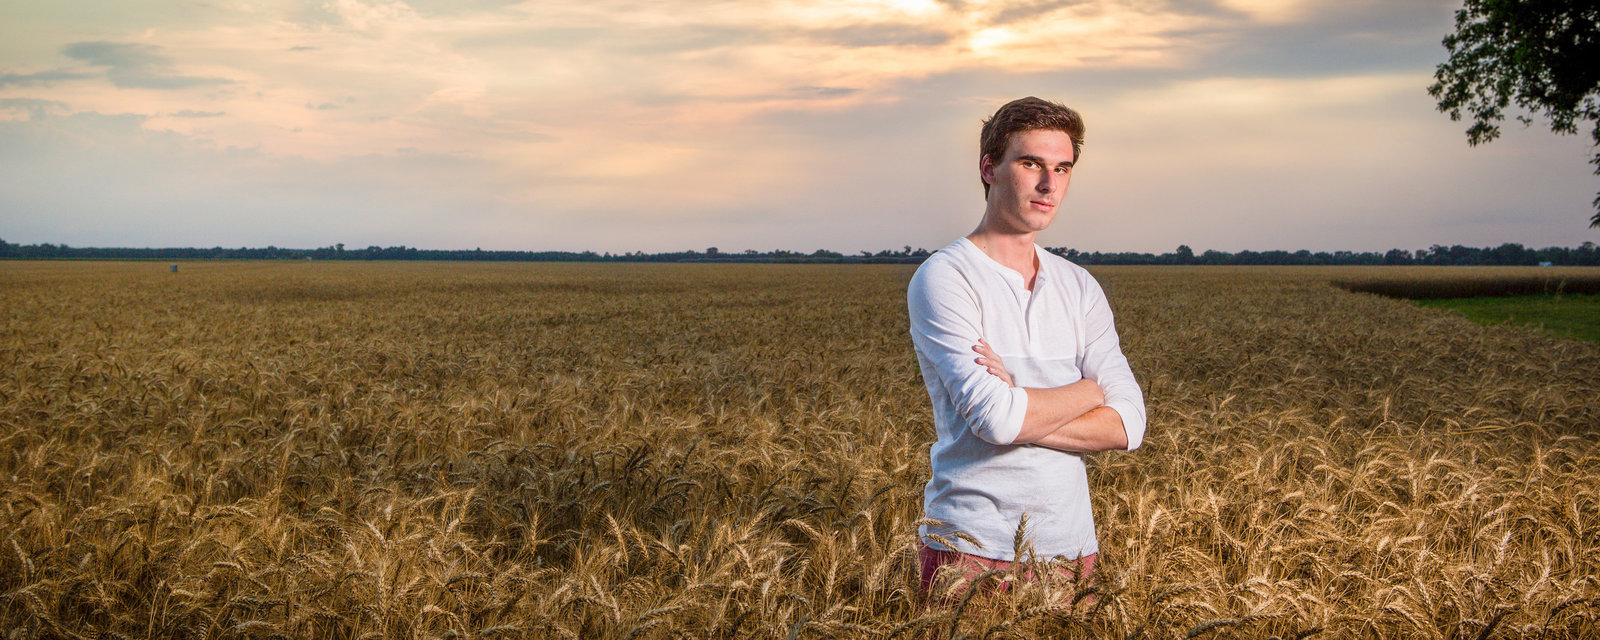 Garrett Roxbury senior portrait session in a wheat field at Atmore, Alabama.